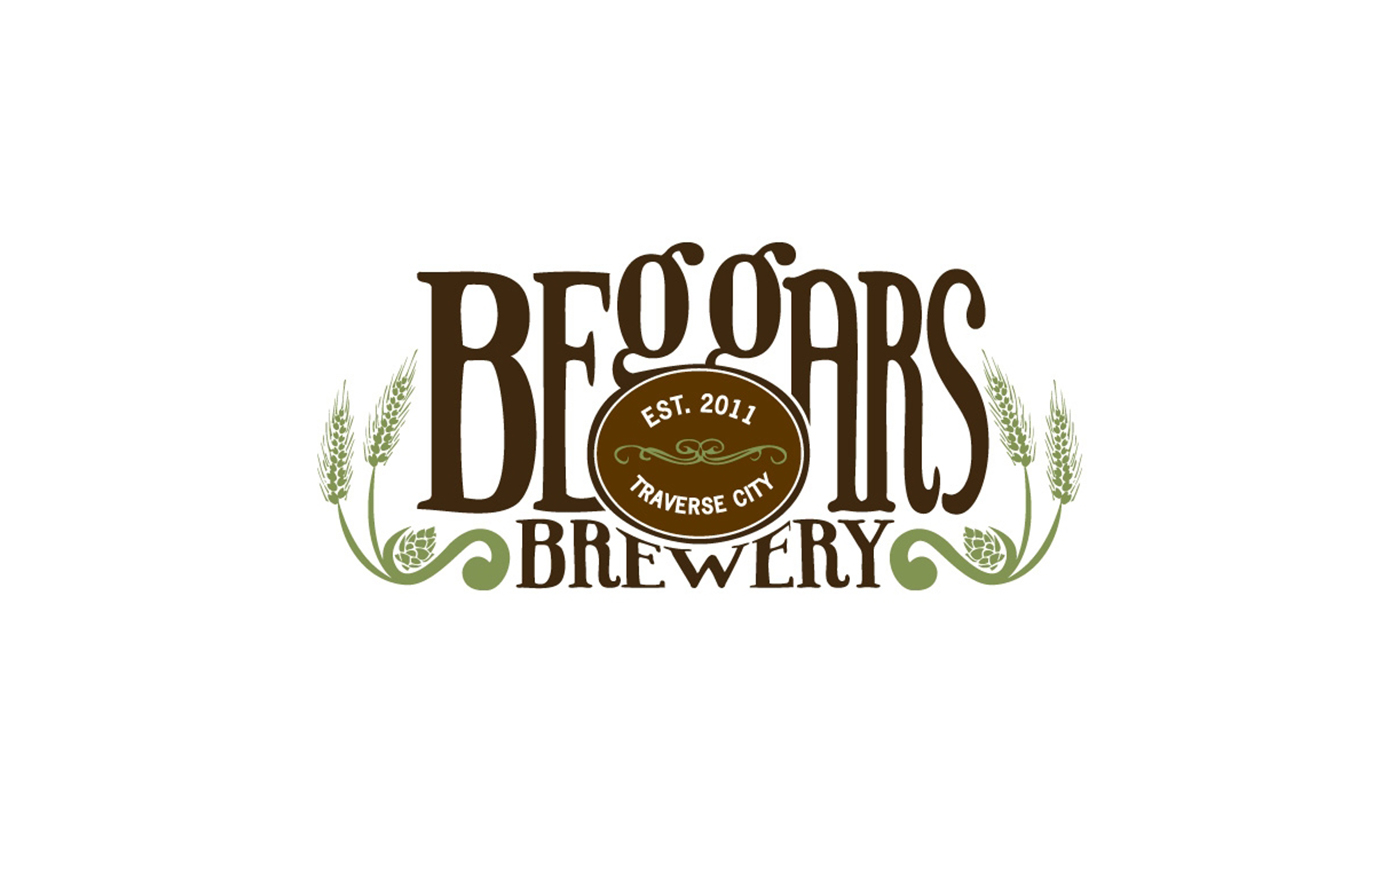 Beggars Brewery